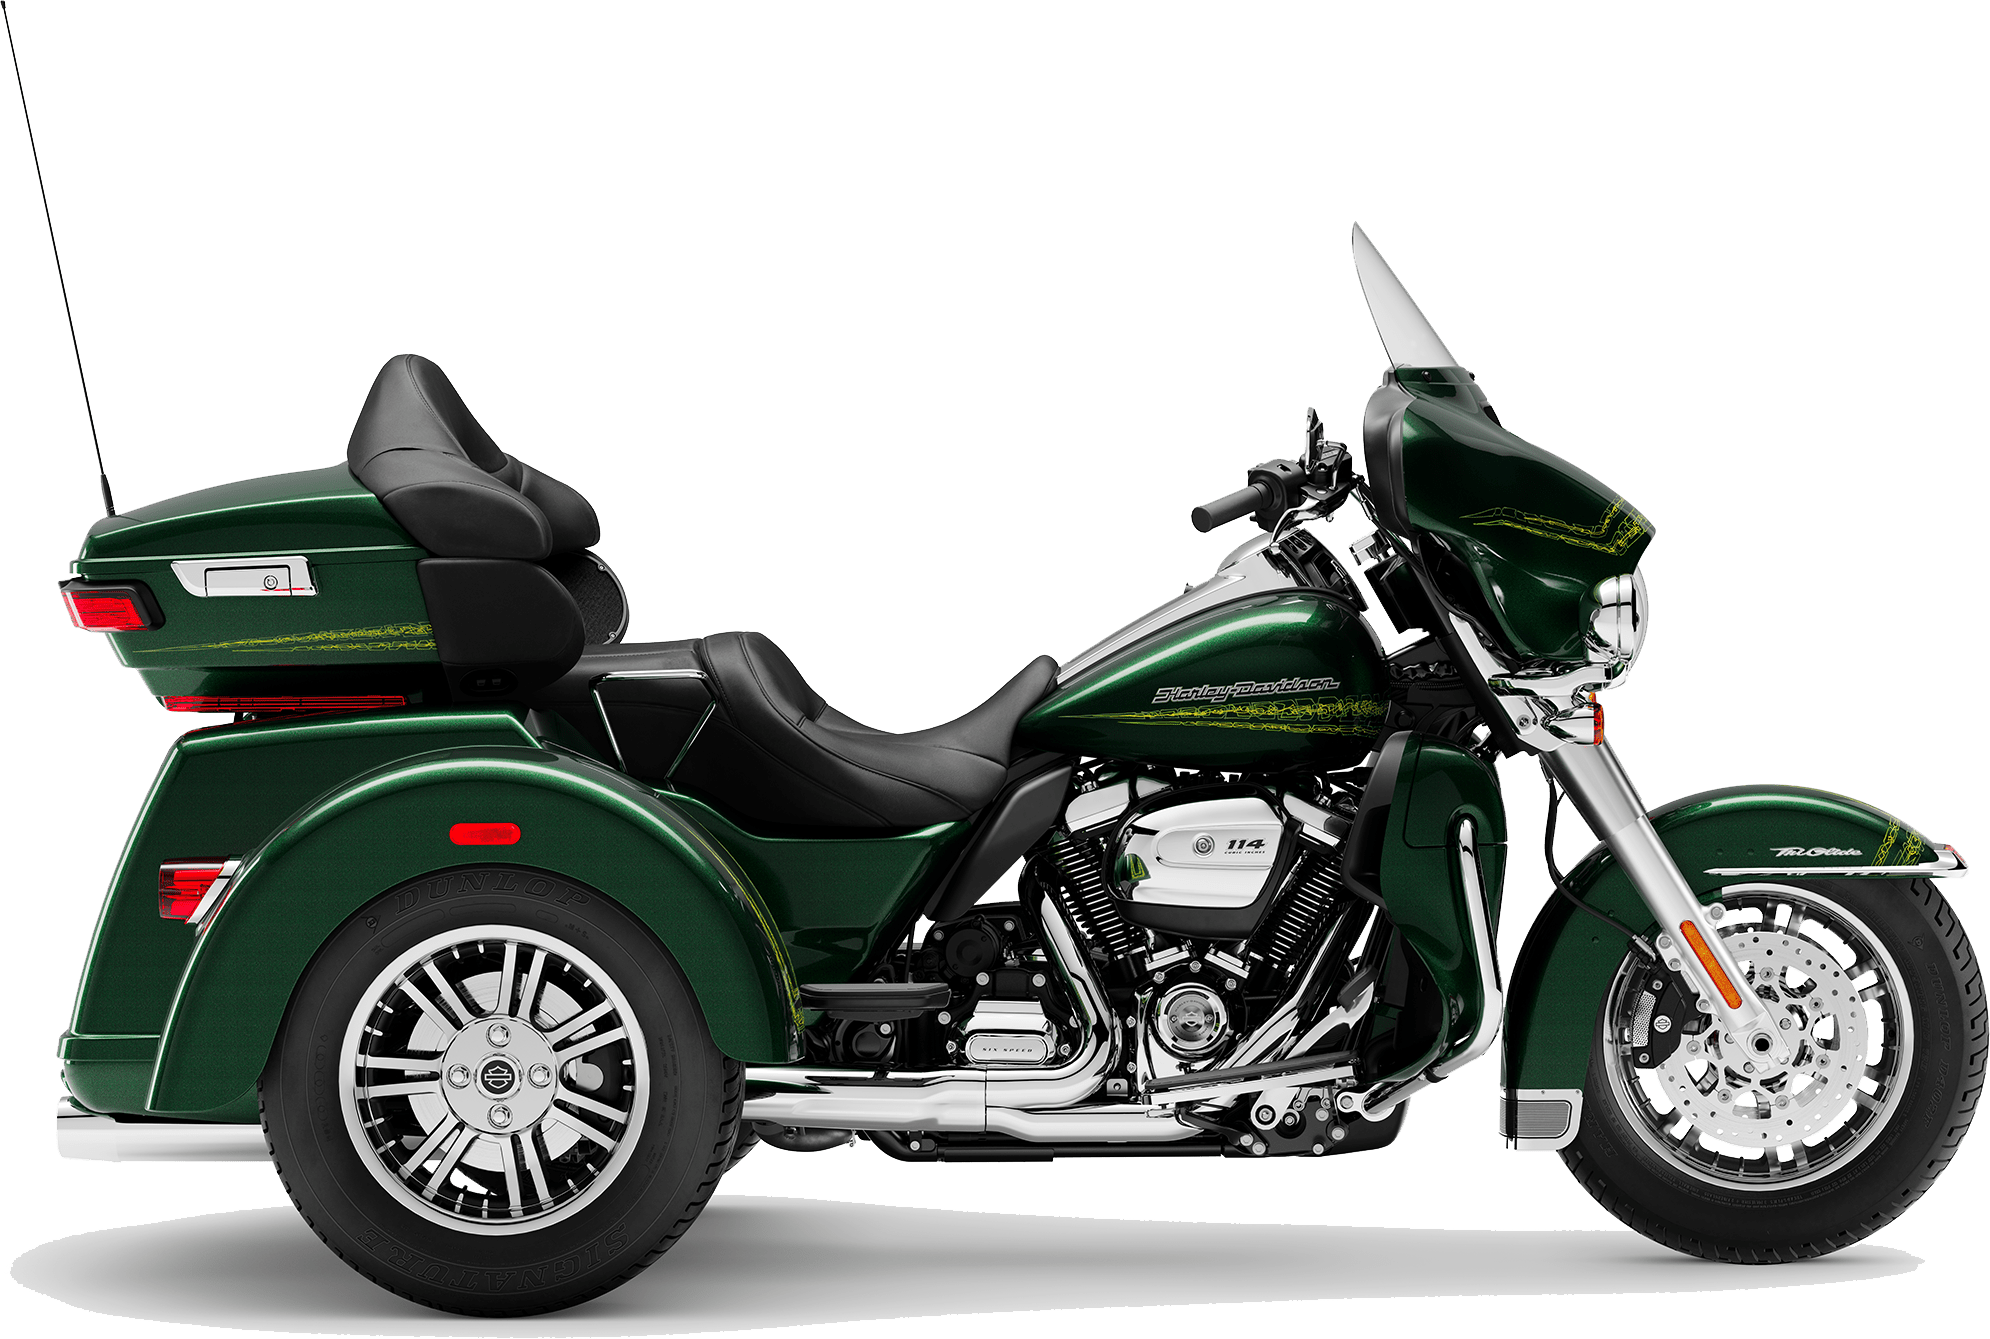 2019 Harley-Davidson Tri-Glide Kinetic Green